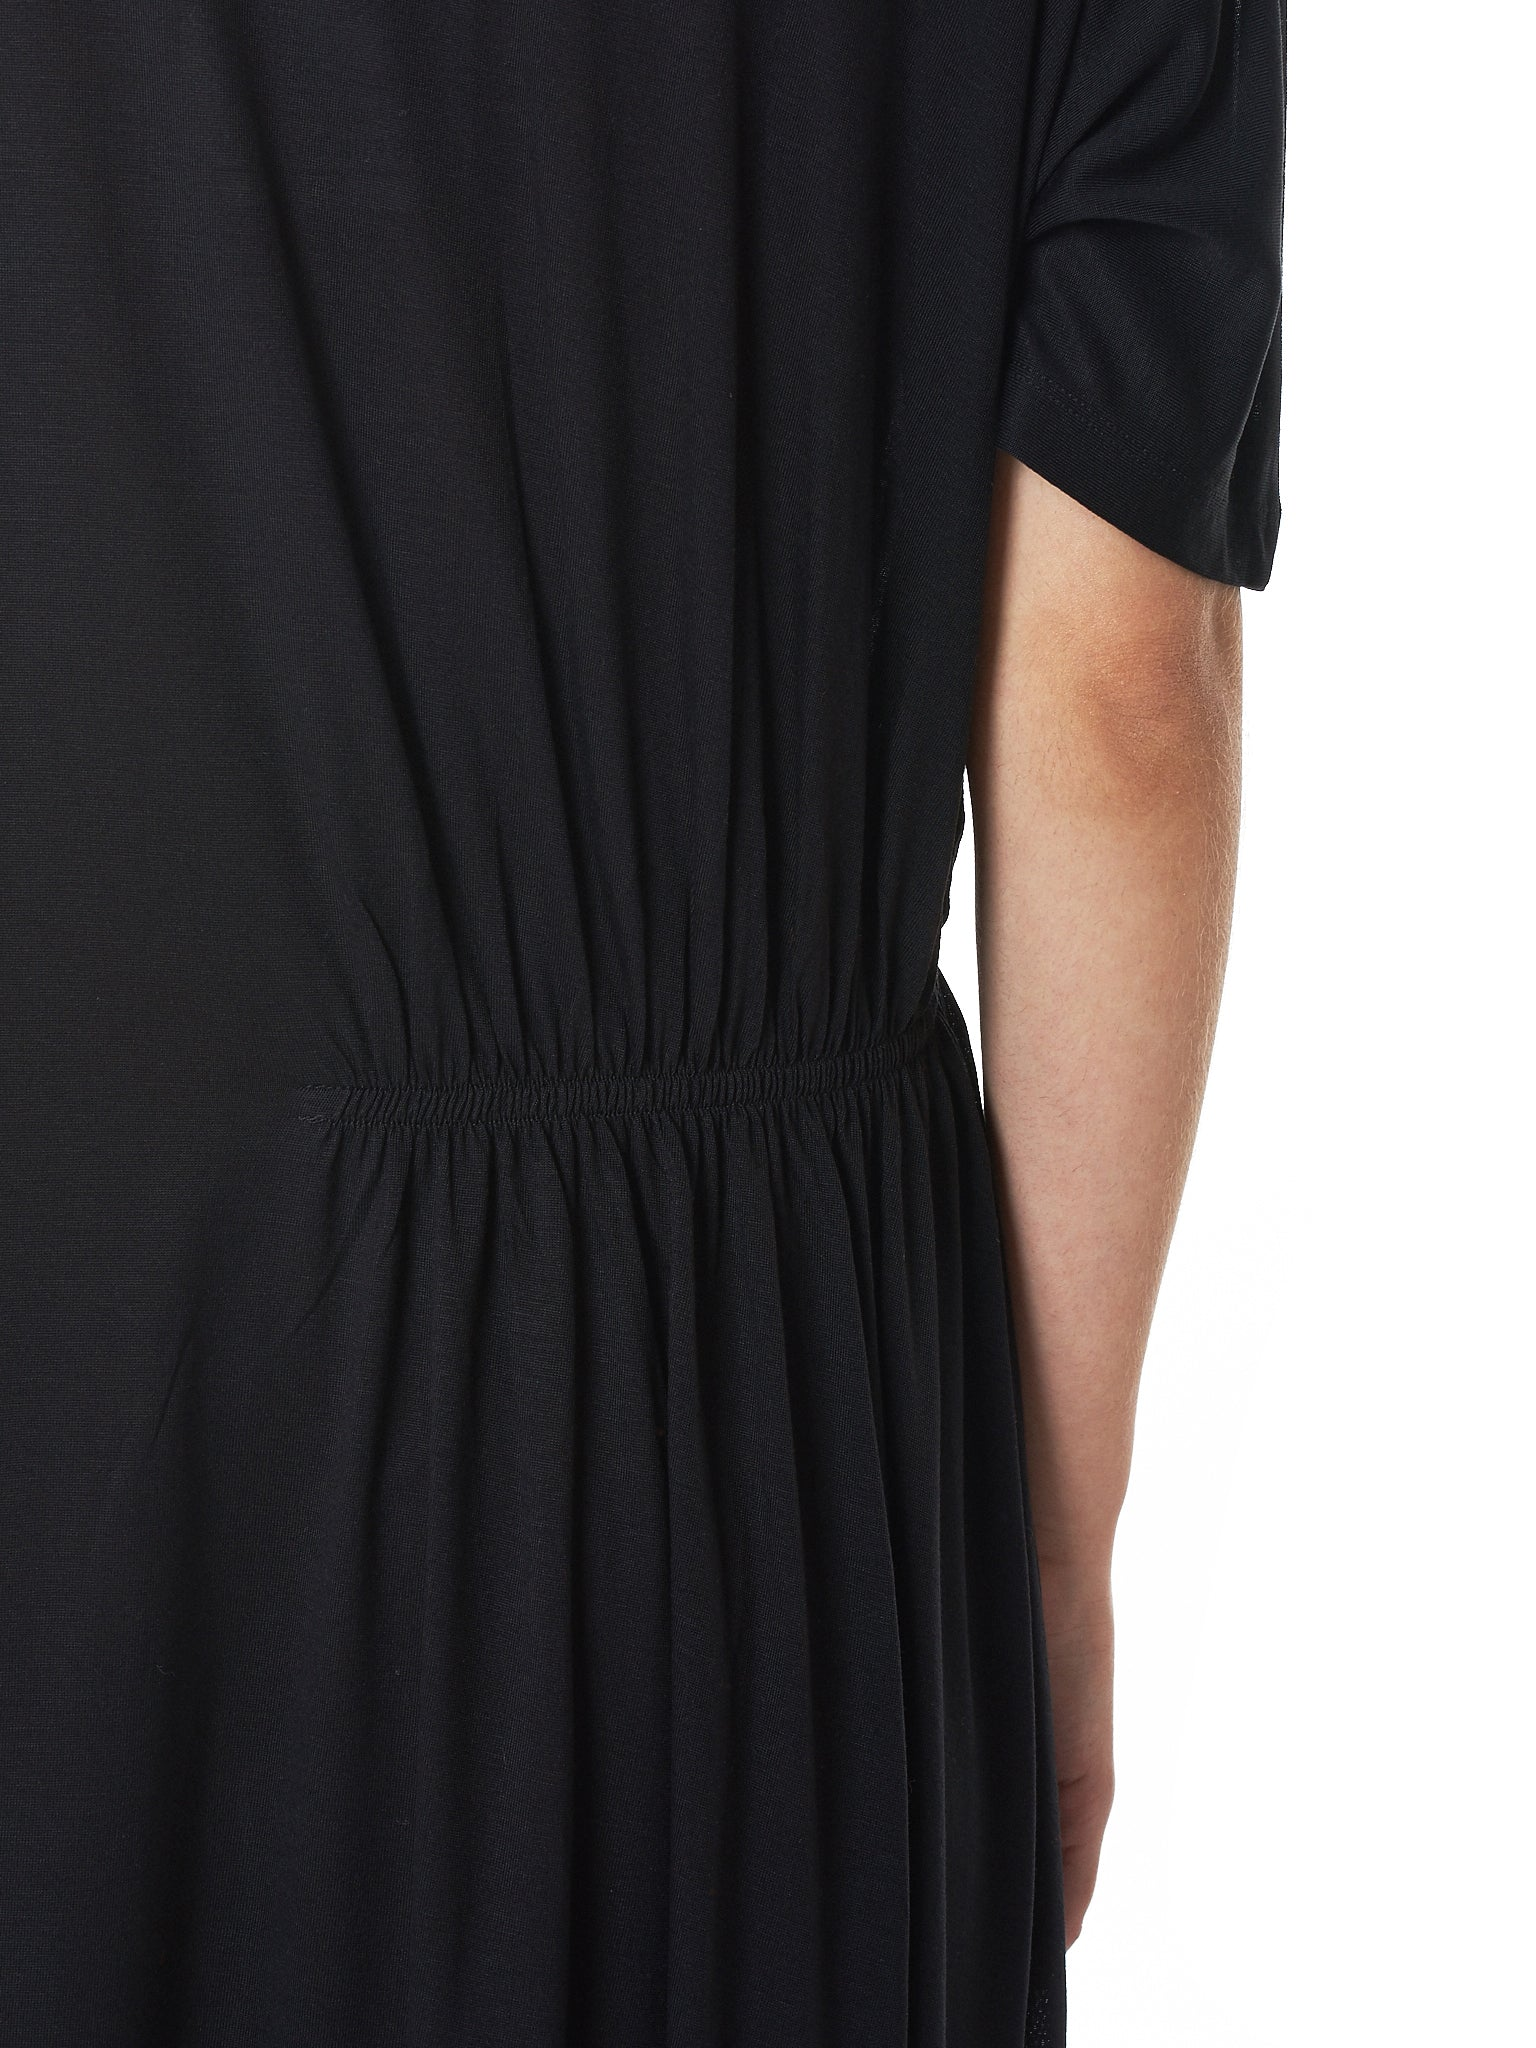 Henrik Vibskov Dress - Hlorenzo detail 2